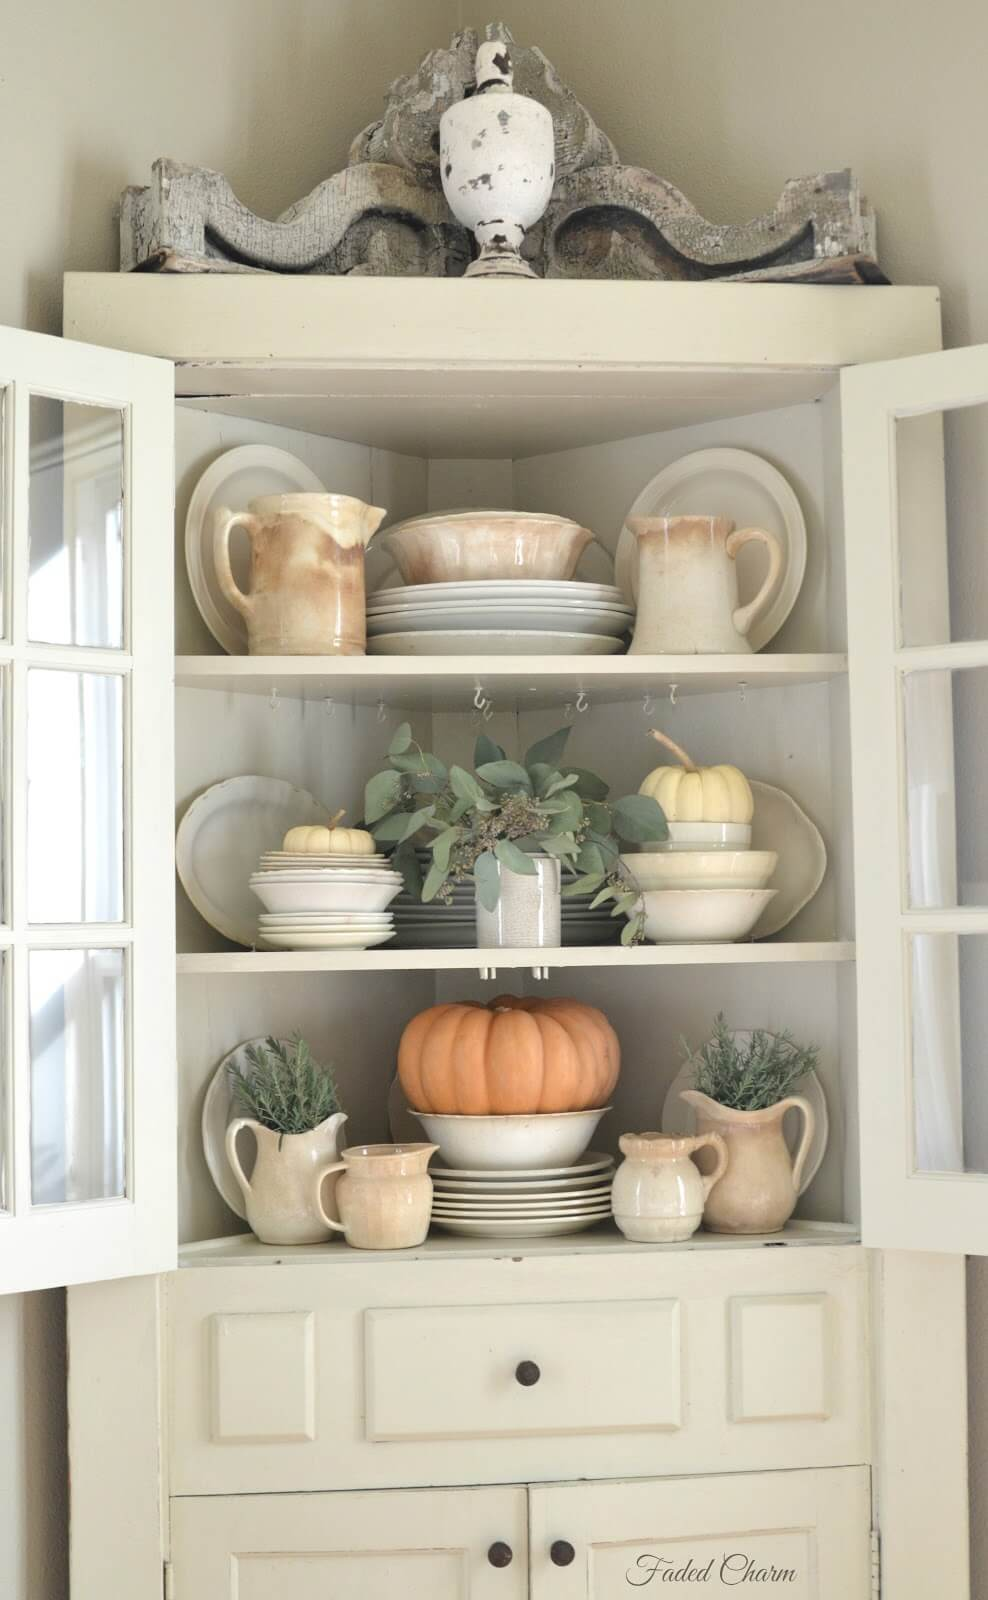 Corner Cabinet with Sage and Gourds